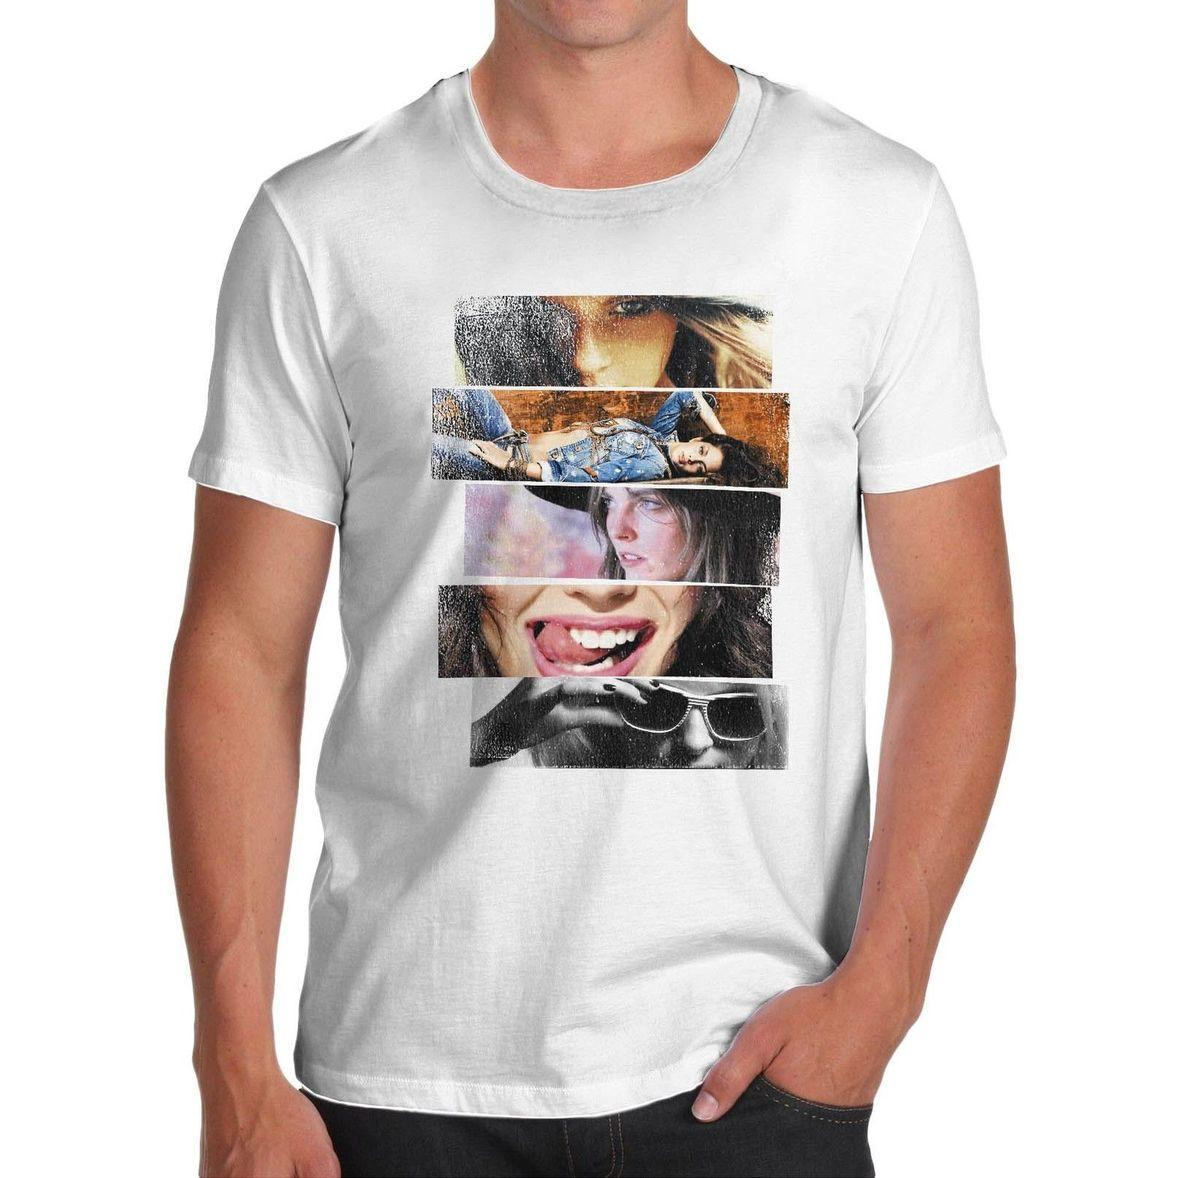 87aab84ec4a Twisted Envy Men S Collage Women Novelty T Shirt White T Shirts With  Designs Cloth T Shirt From Lijian85